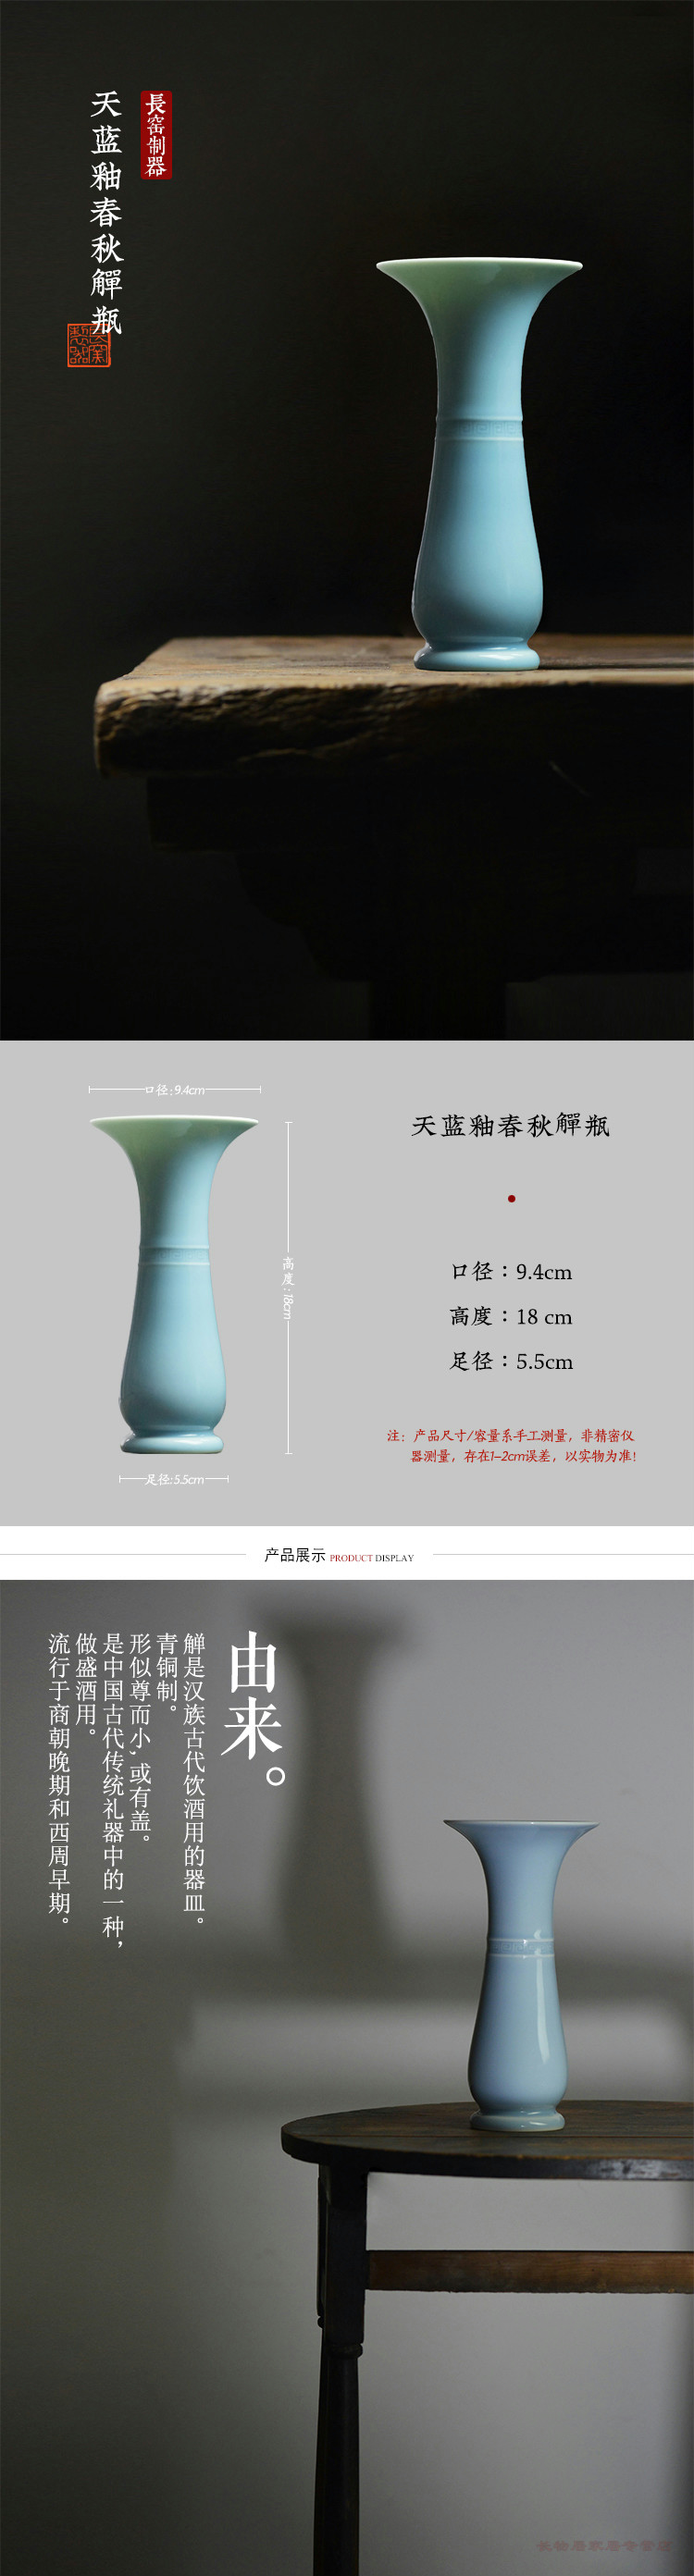 Offered home - cooked ju long up controller shamrock glaze in the spring and autumn vessels bottle of flower vase with jingdezhen pure manual archaize ceramic vase that occupy the home